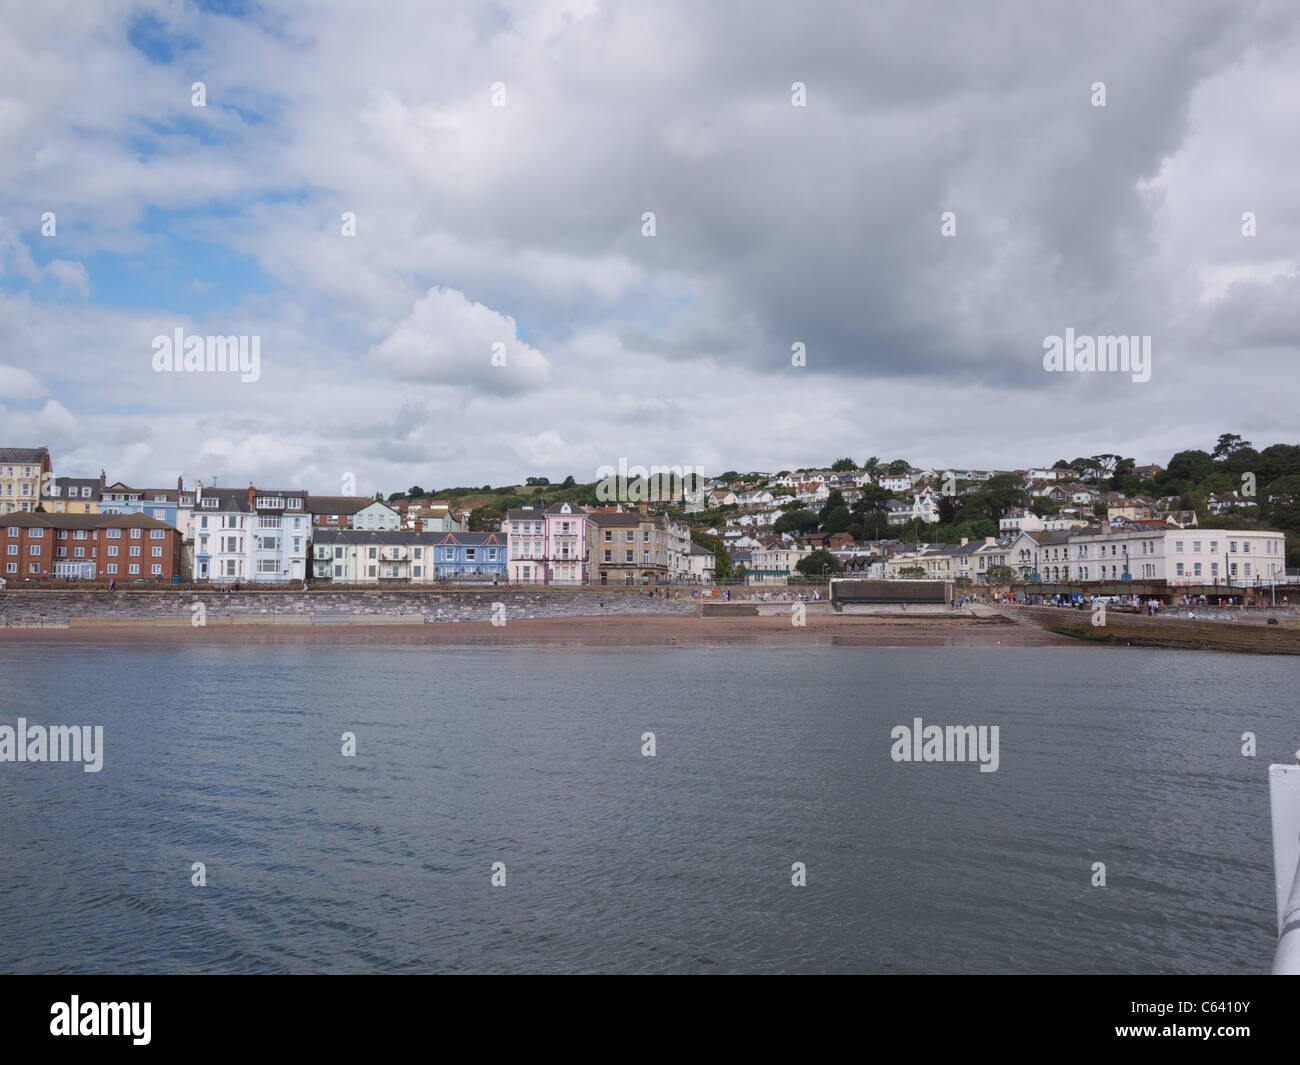 Dawlish Seafront from the sea - Stock Image